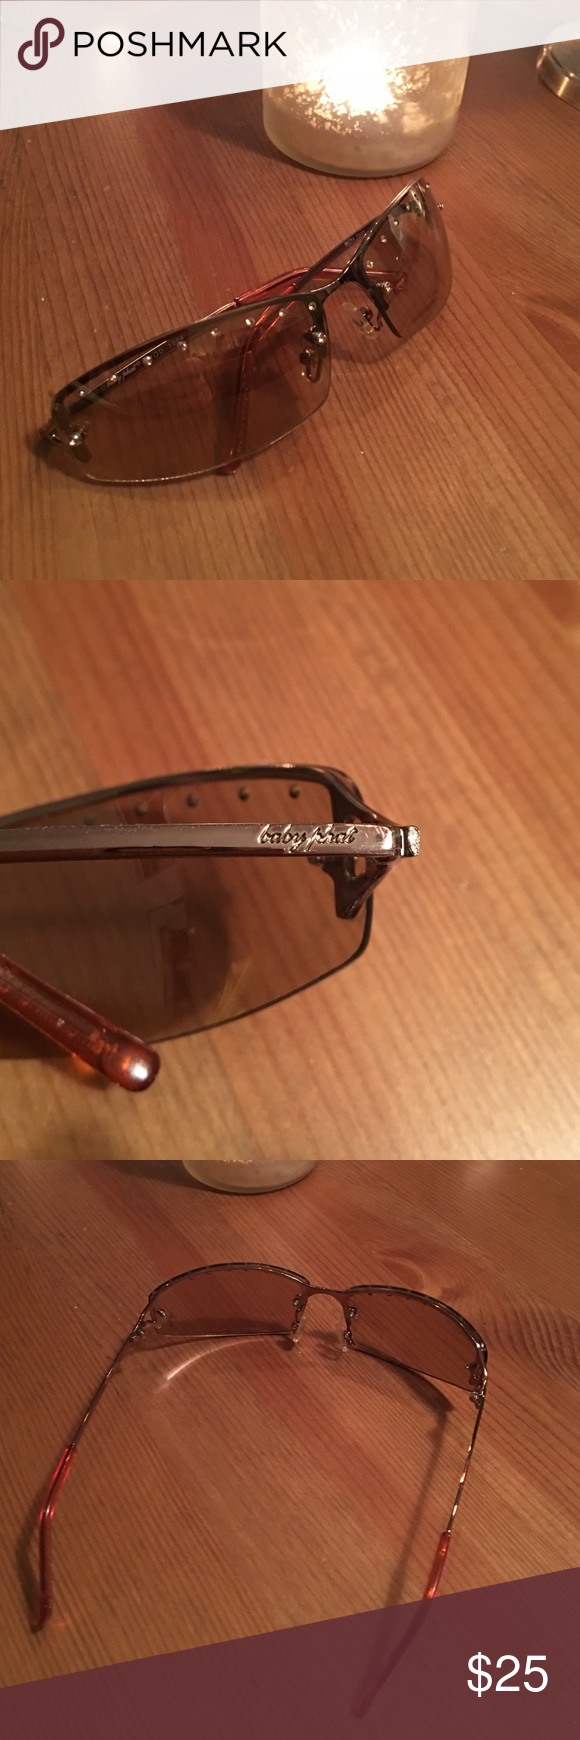 Baby phat sunglasses with crystal sparkle | My Posh Picks by ...